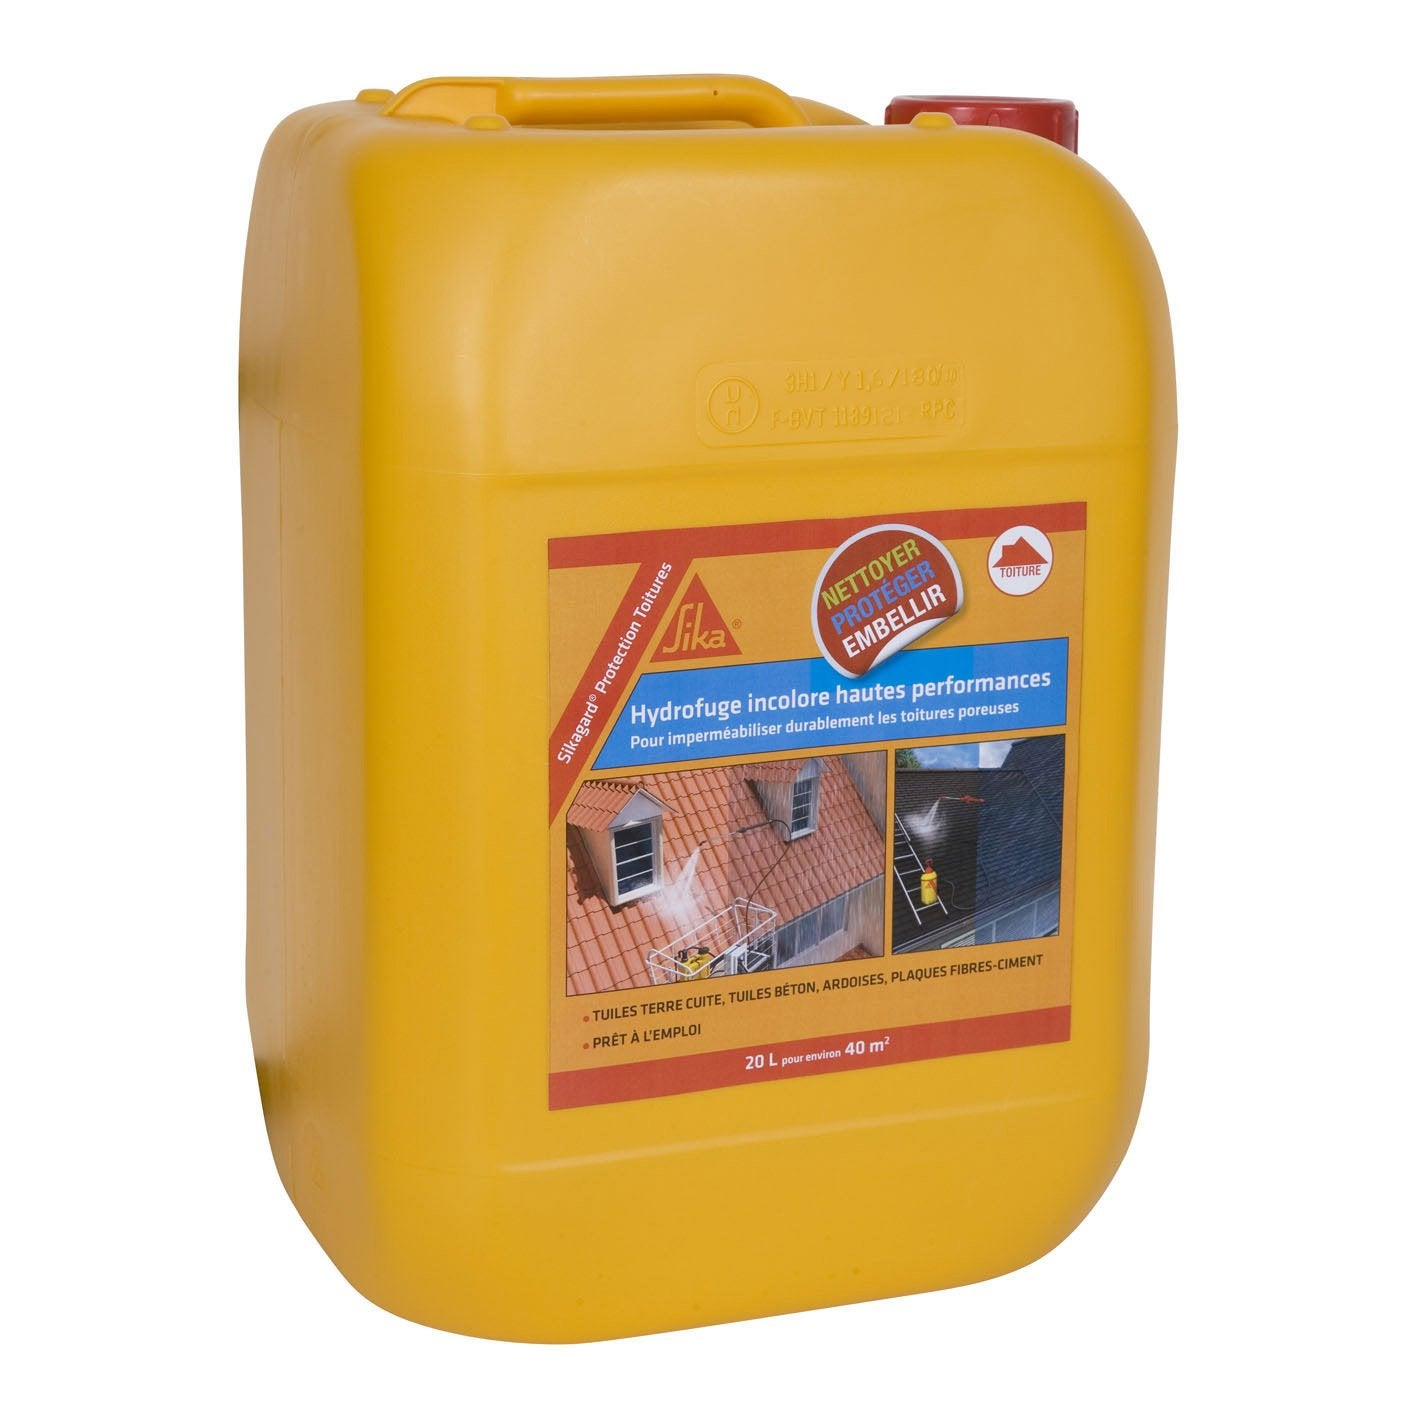 Imperm abilisant sika sikagard 20 l incolore leroy merlin - Hydrofuge toiture leroy merlin ...